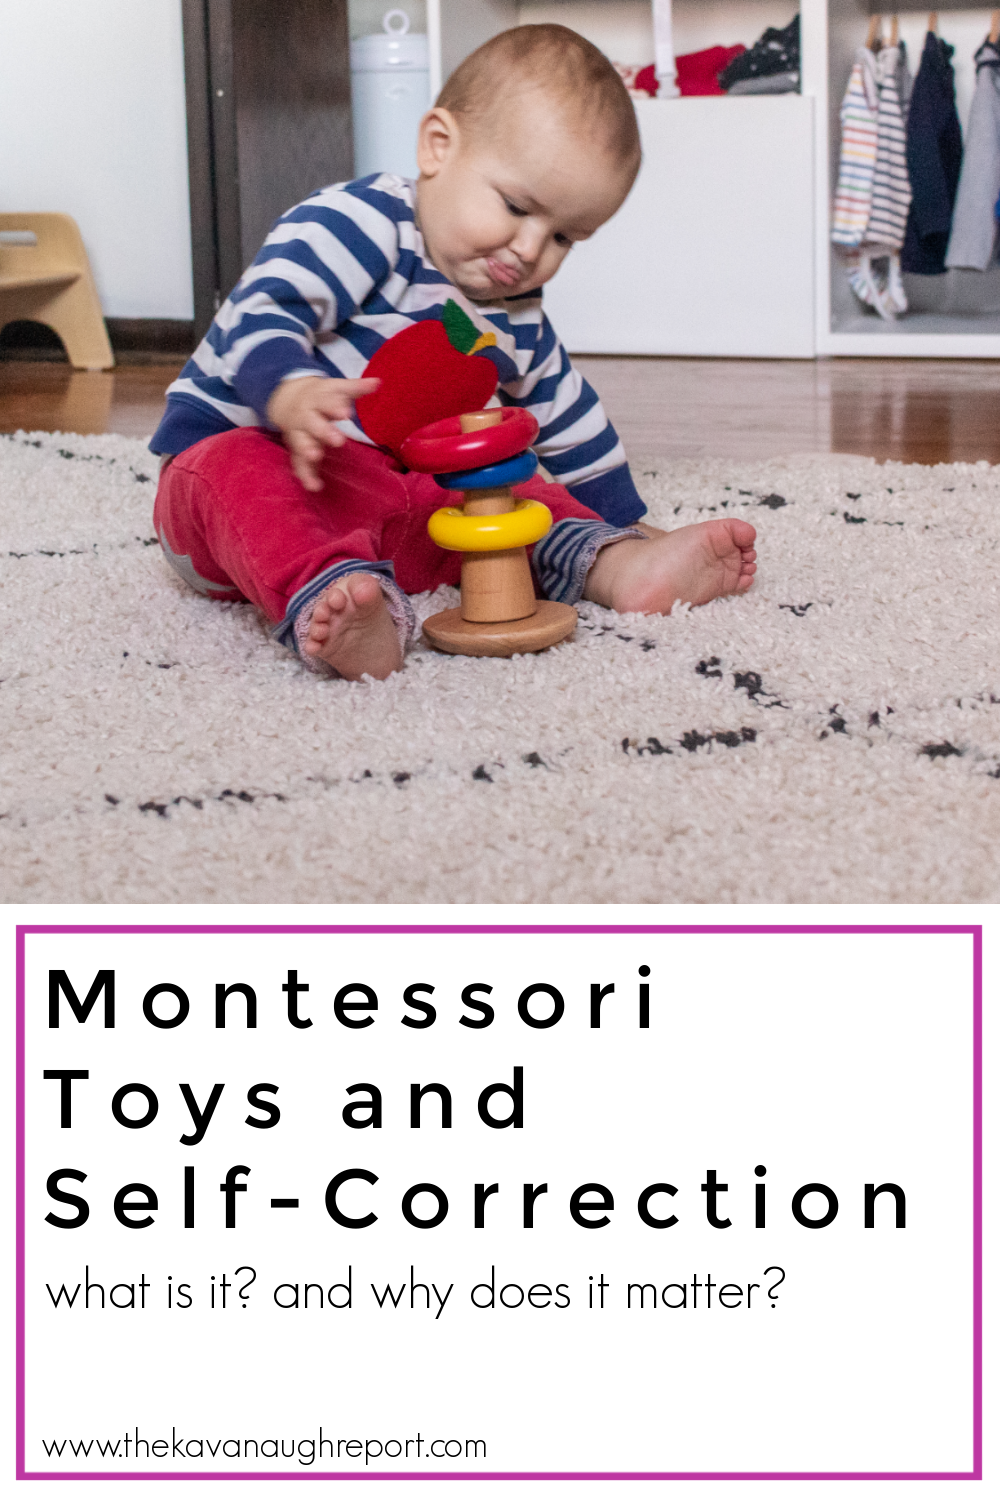 One important quality of Montessori toys is that they are self-correcting. Here is some information about why self-correcting materials are important.